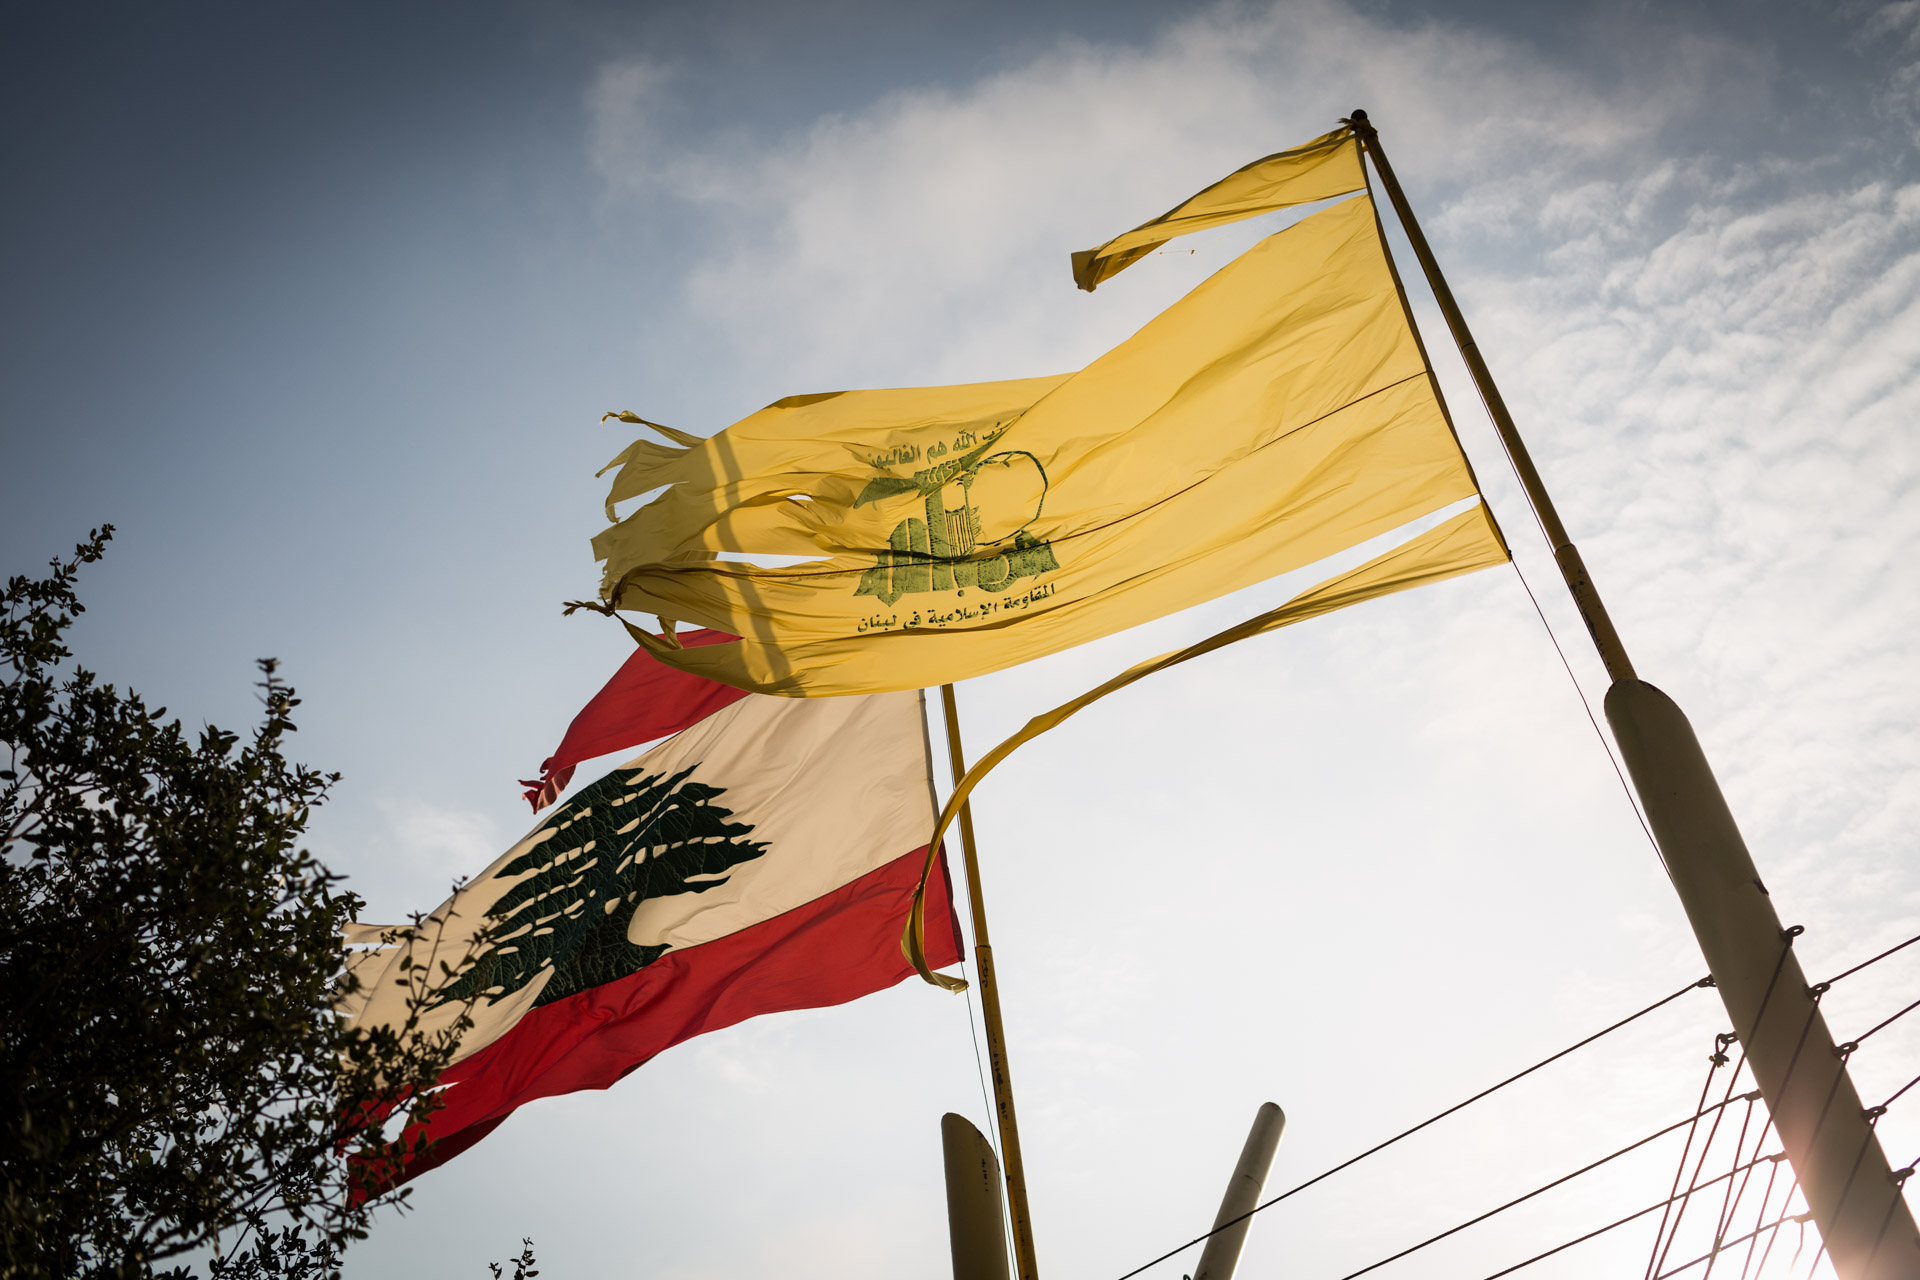 Not only Shiite, but all kinds of Lebanese people regard the Shia party Hezbollah as a vital guardian of Lebanon, having defended the south of the country twice.